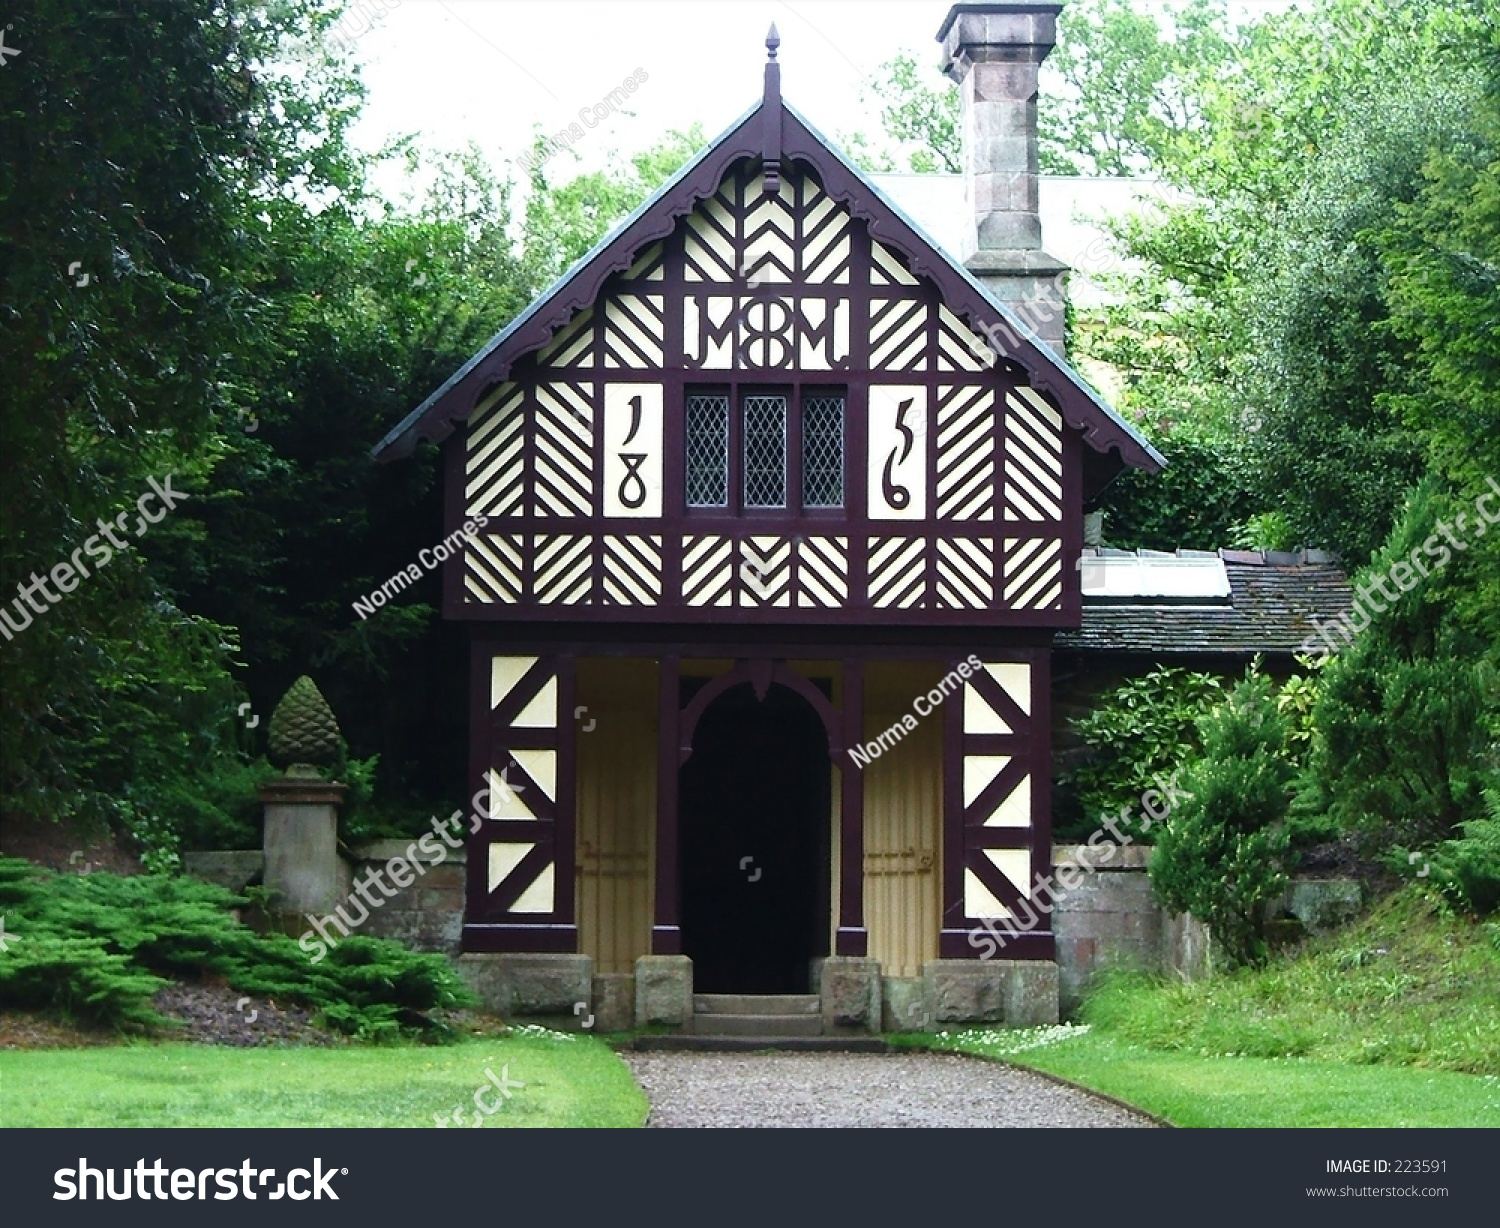 26   Cool medieval cottage in the for Medieval Cottage In The Woods  181obs